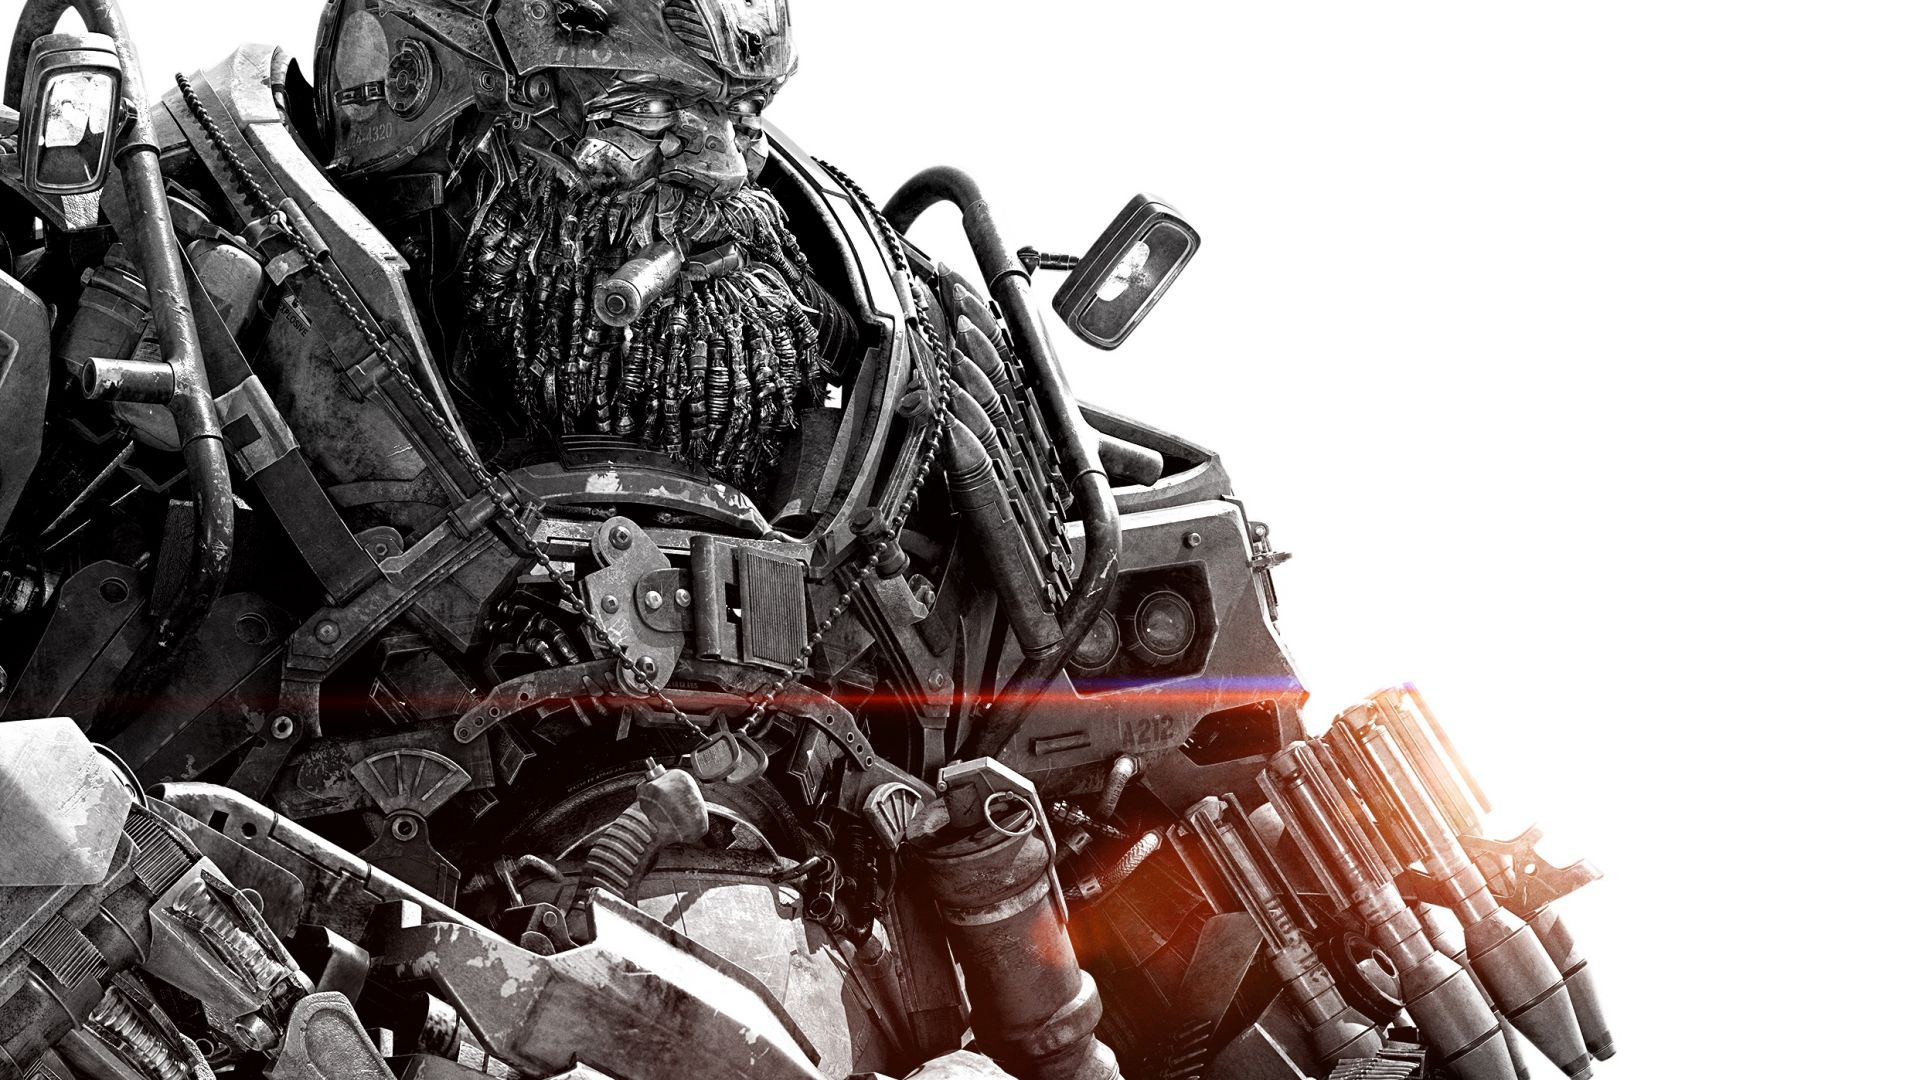 Wallpaper Transformers: The Last Knight, movie, Hound, cyborg